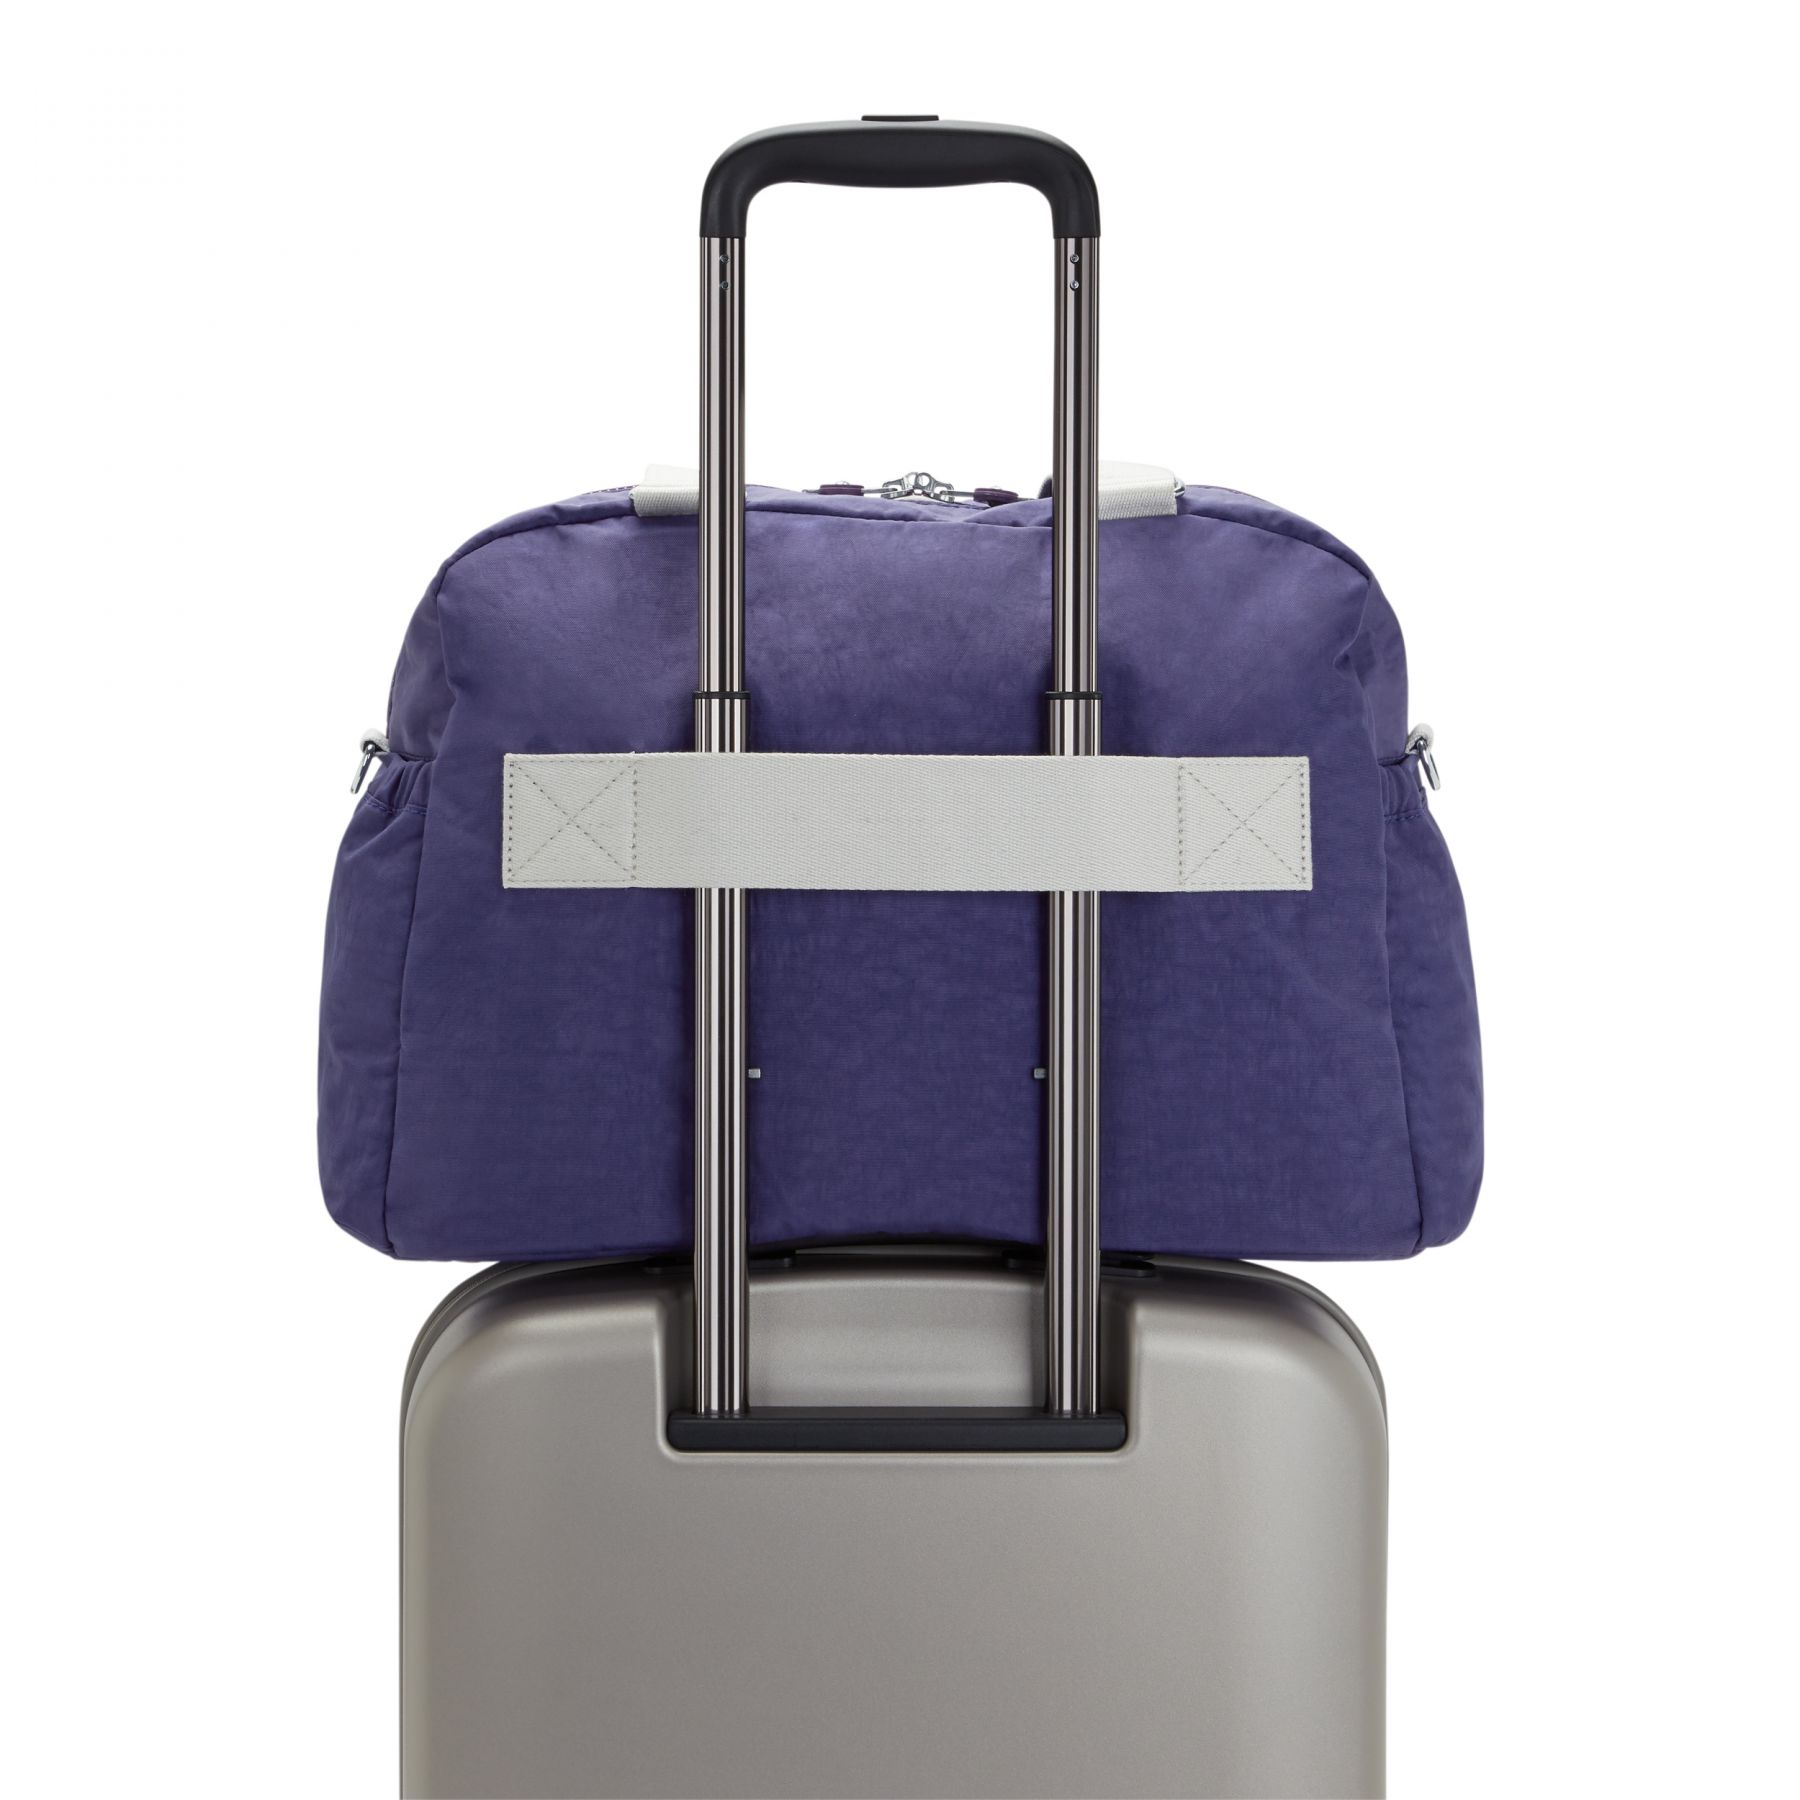 DENY LUGGAGE by Kipling - view 6